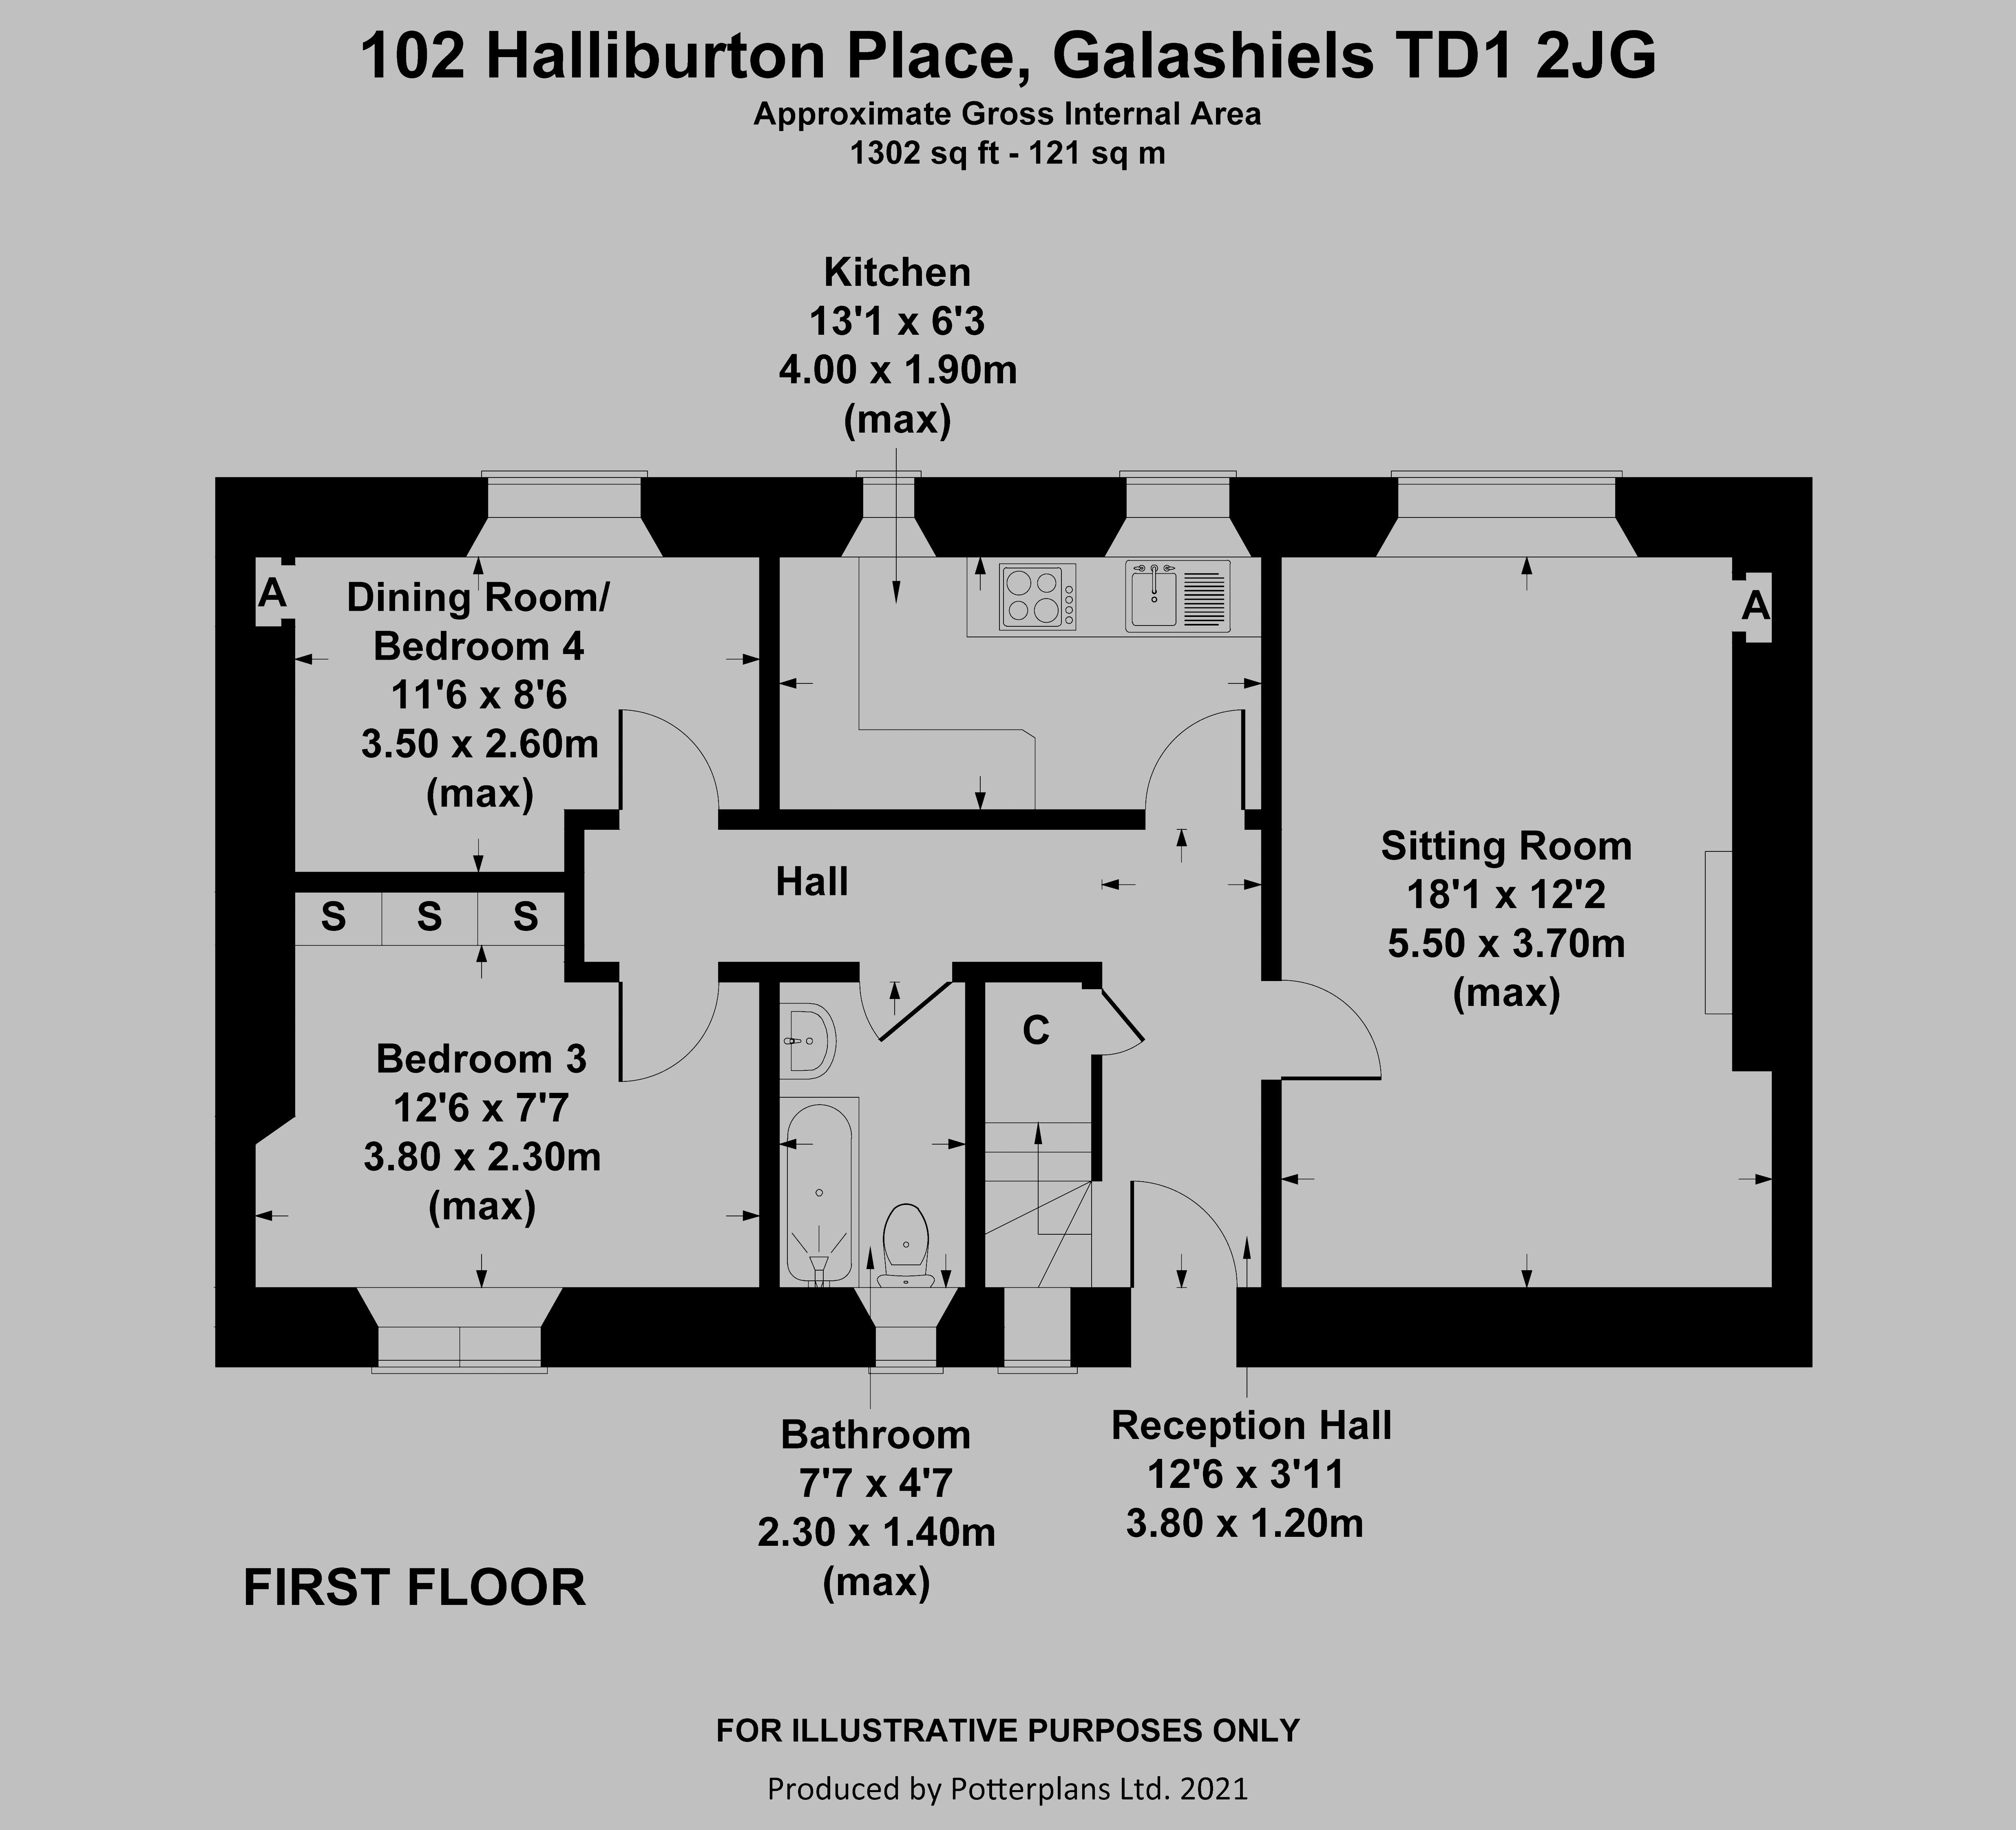 102 Halliburton Place First Floor